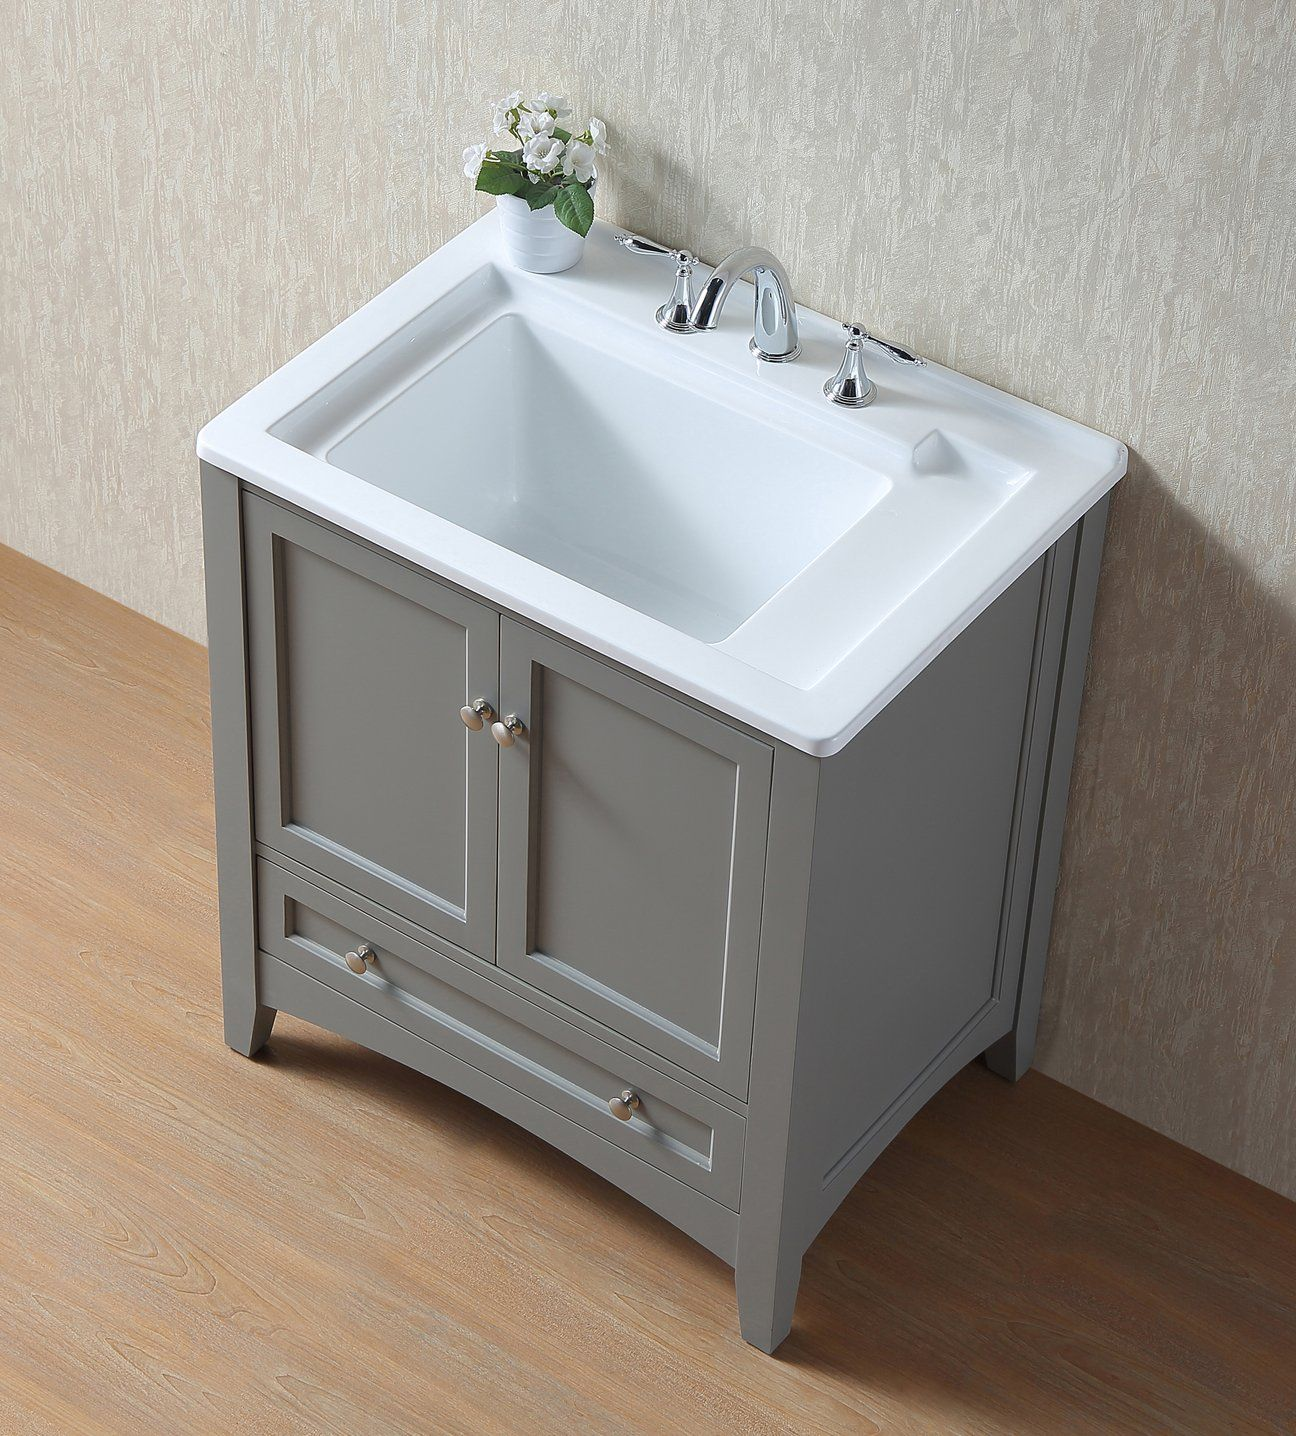 Stufurhome 30 In 2020 Utility Sink Laundry Room Sink Sink